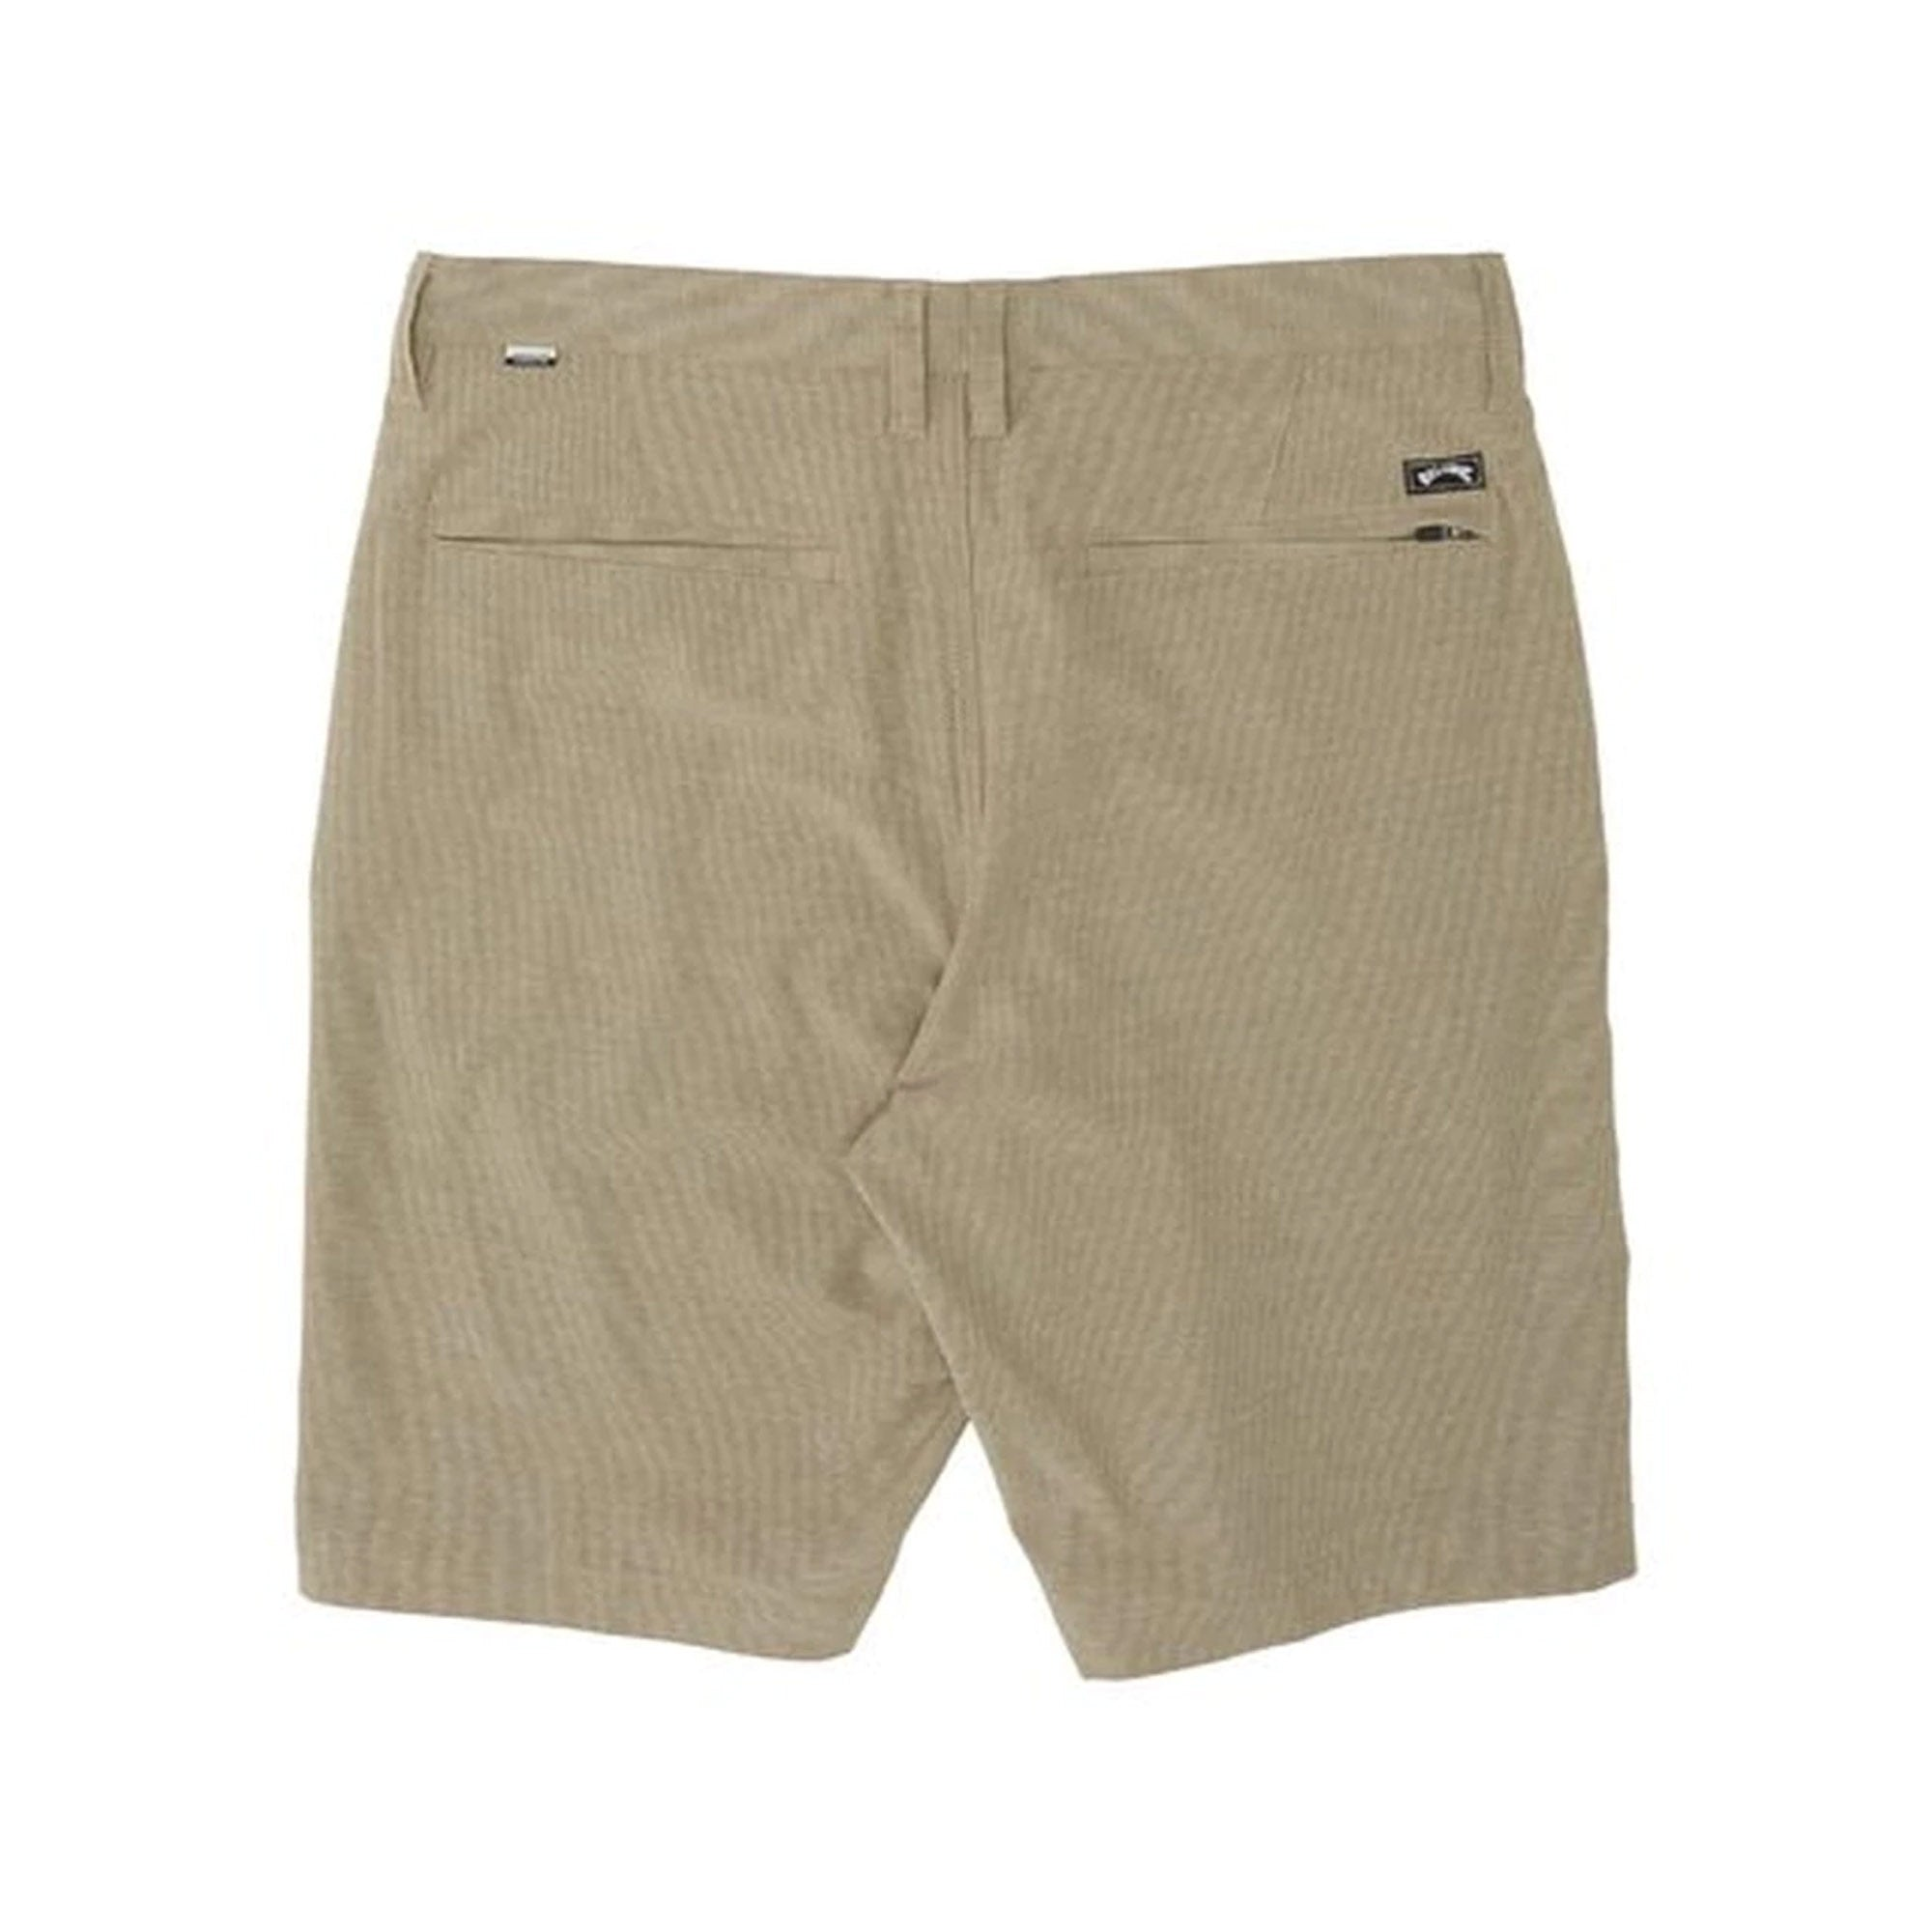 Billabong Crossfire Men's Submersible Walkshort